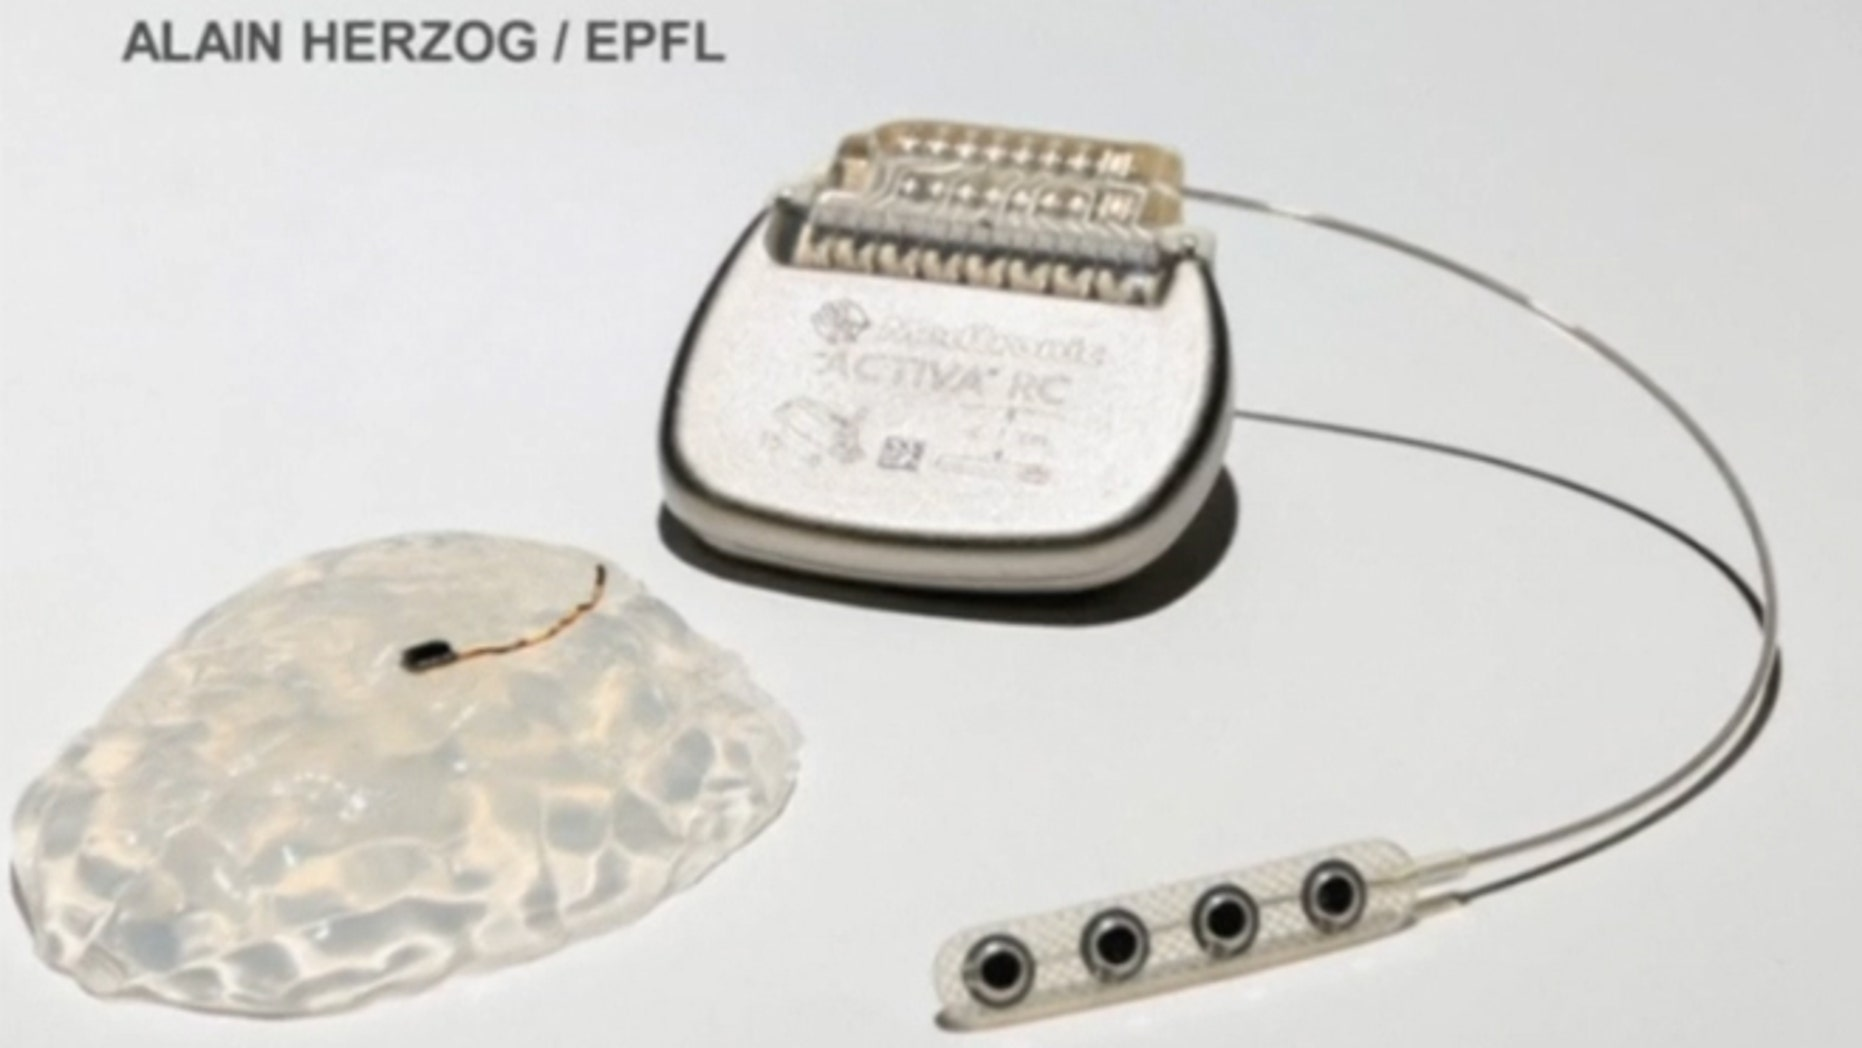 The neuroprosthetic interface acts as a wireless bridge between the brain and spine.